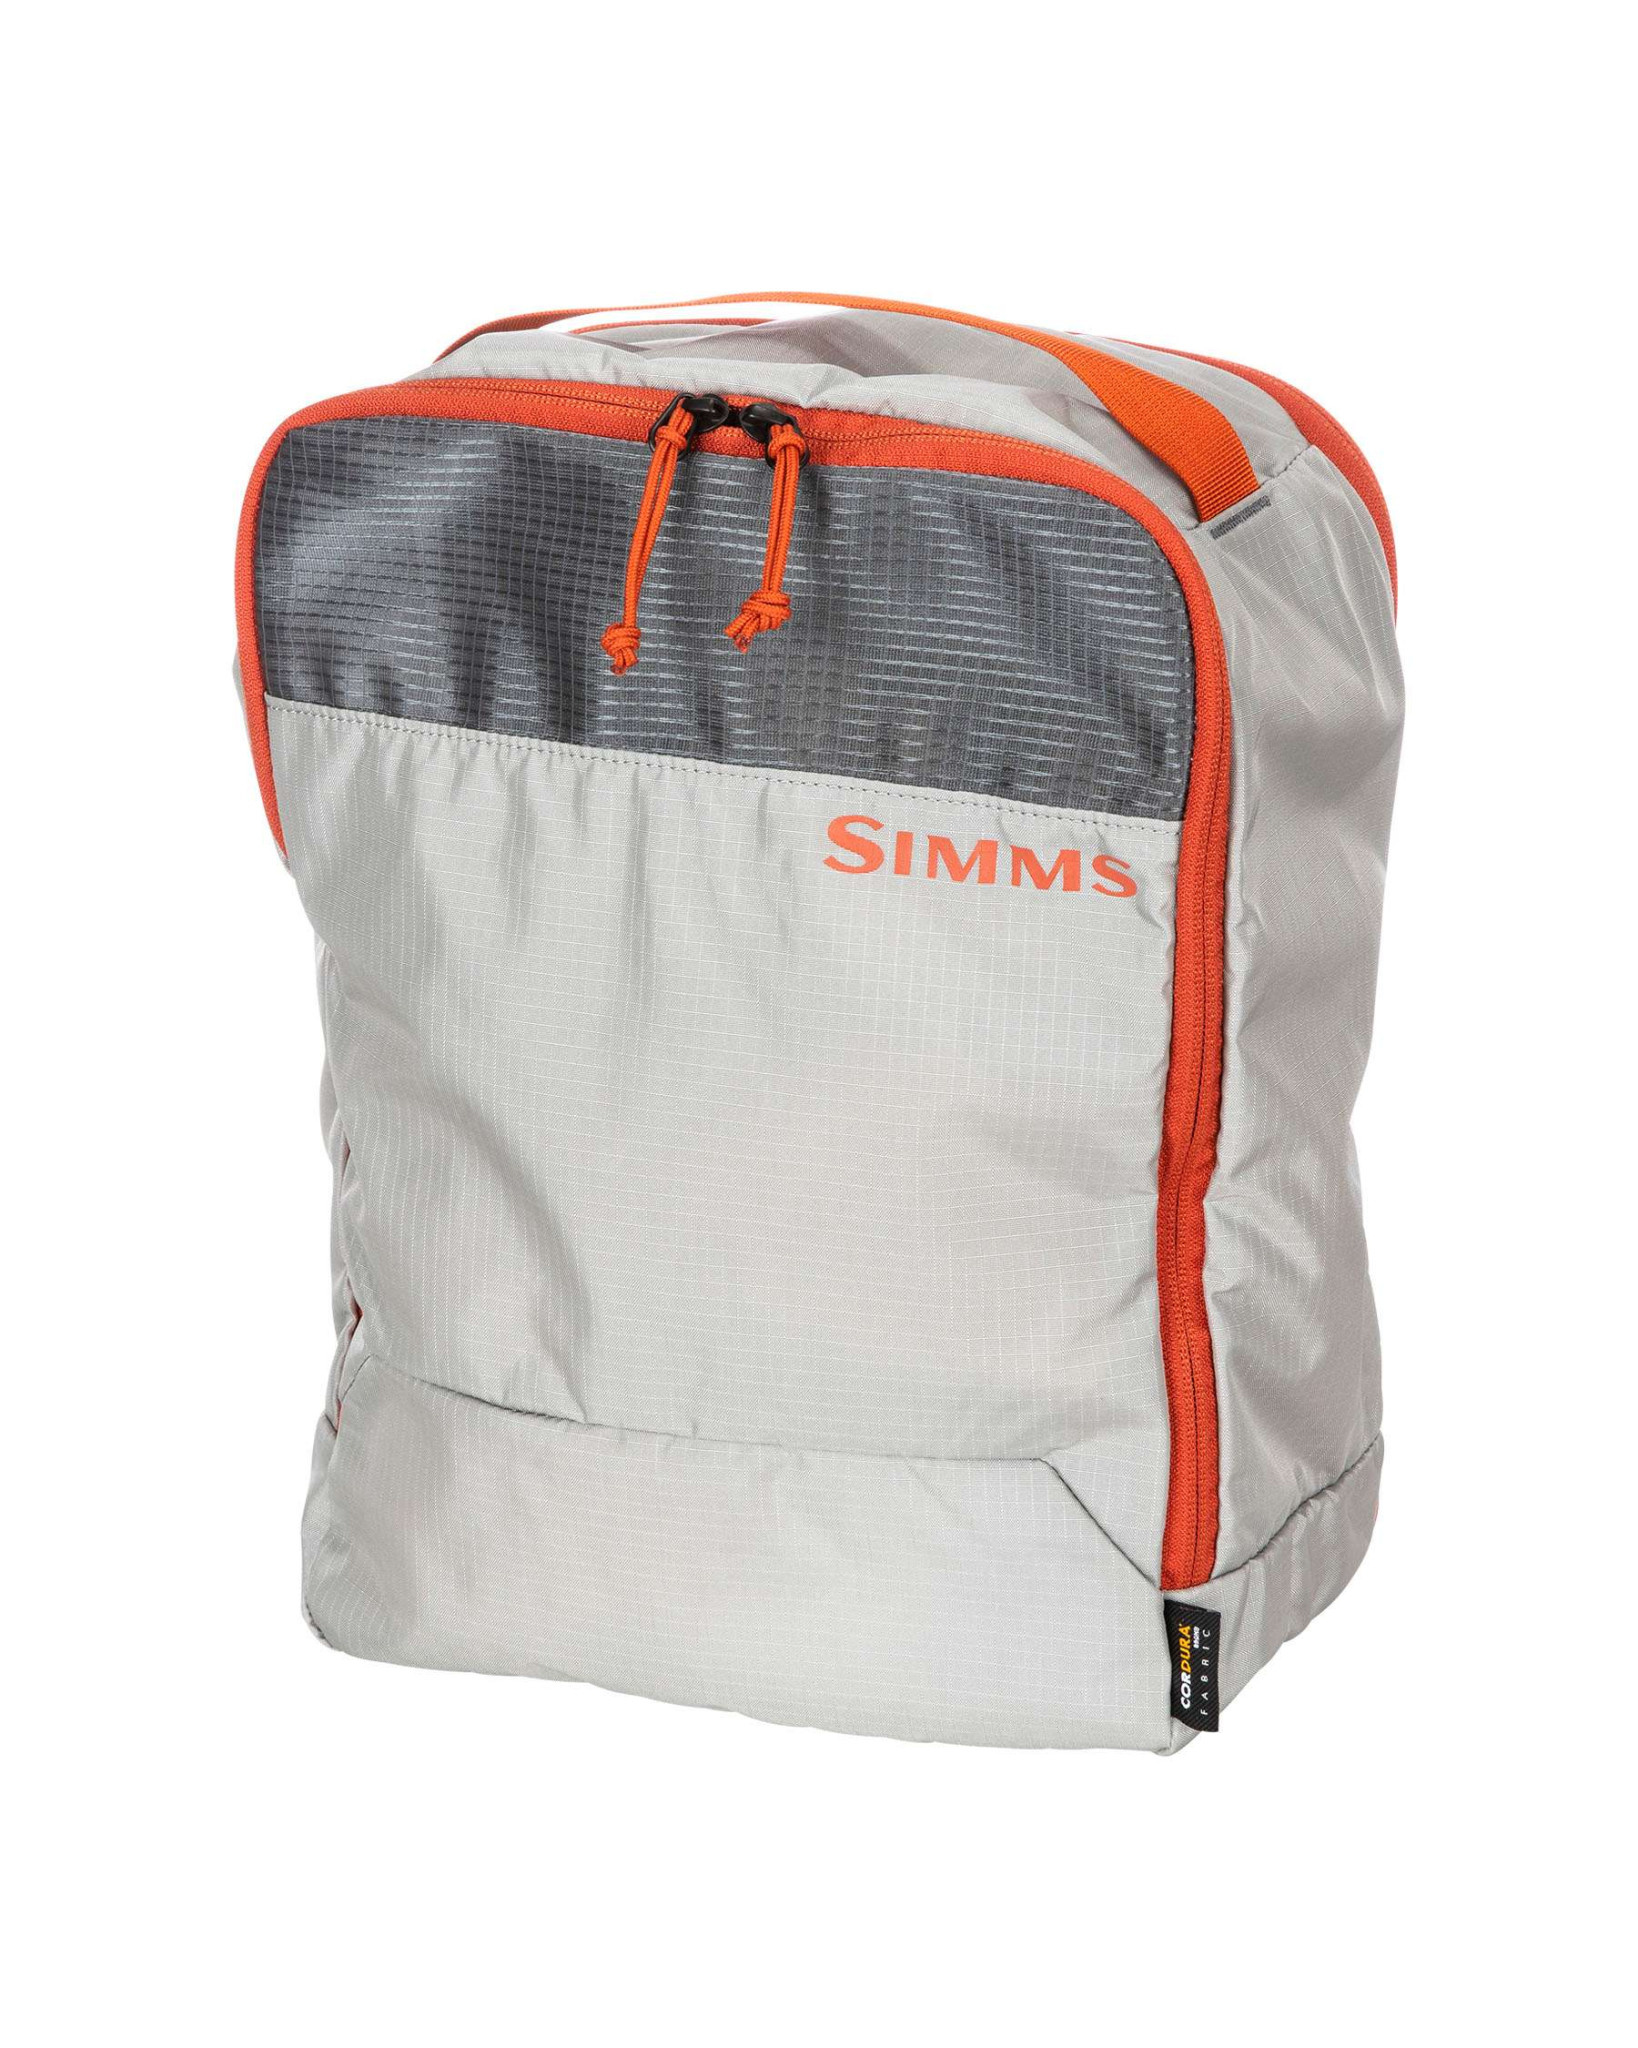 Simms GTS Packing Kit- 3 Pack Sterling